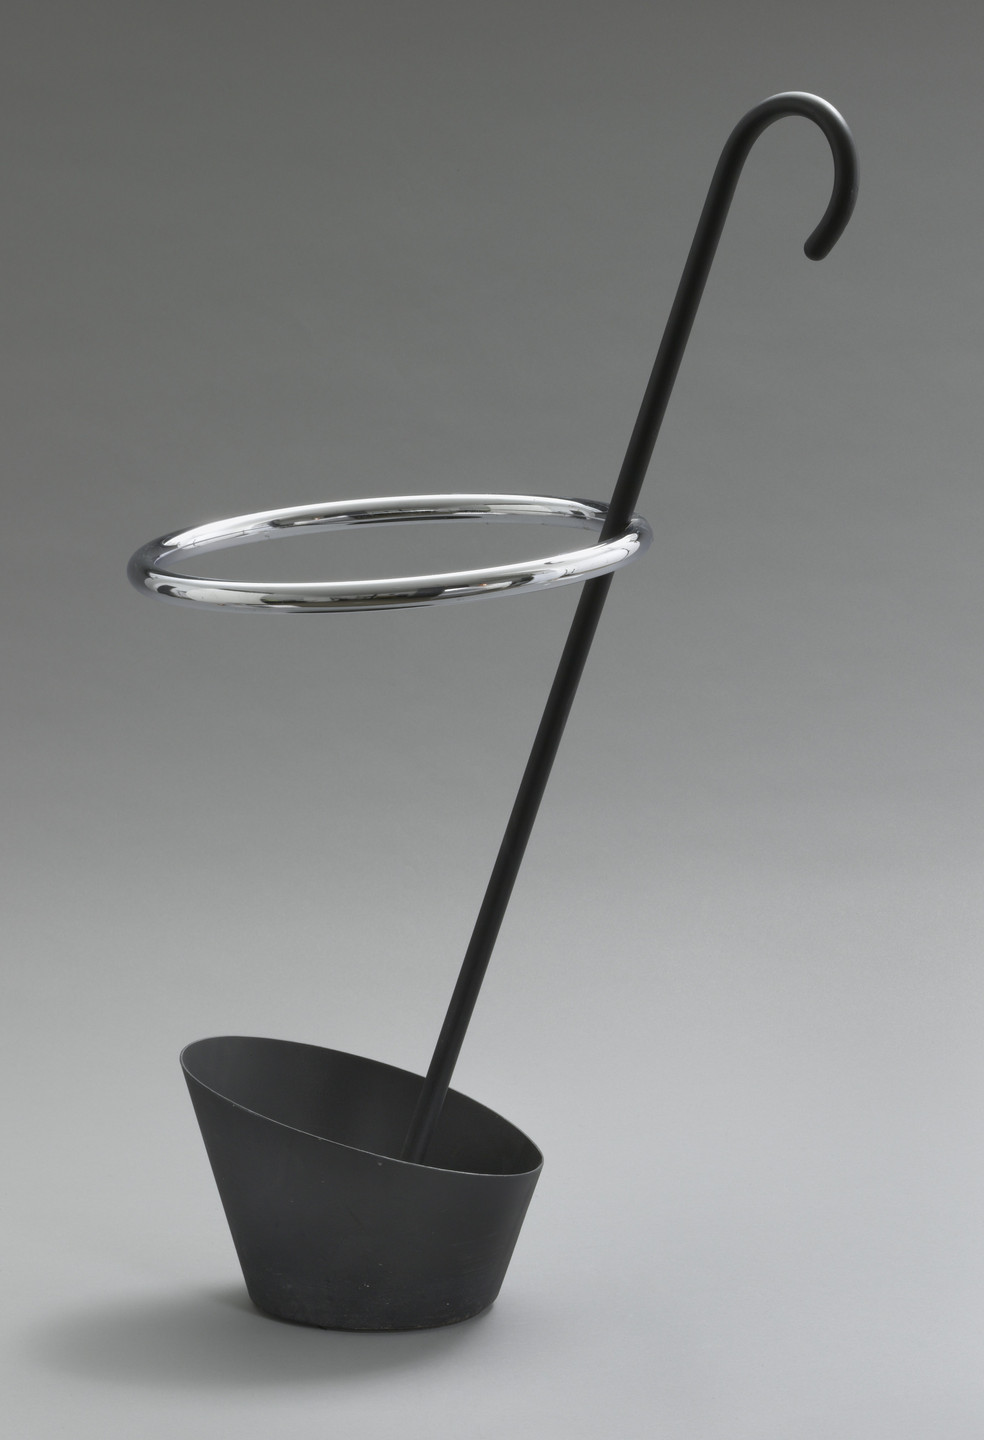 Shiro Kuramata. Umbrella Stand F.1.86. 1987